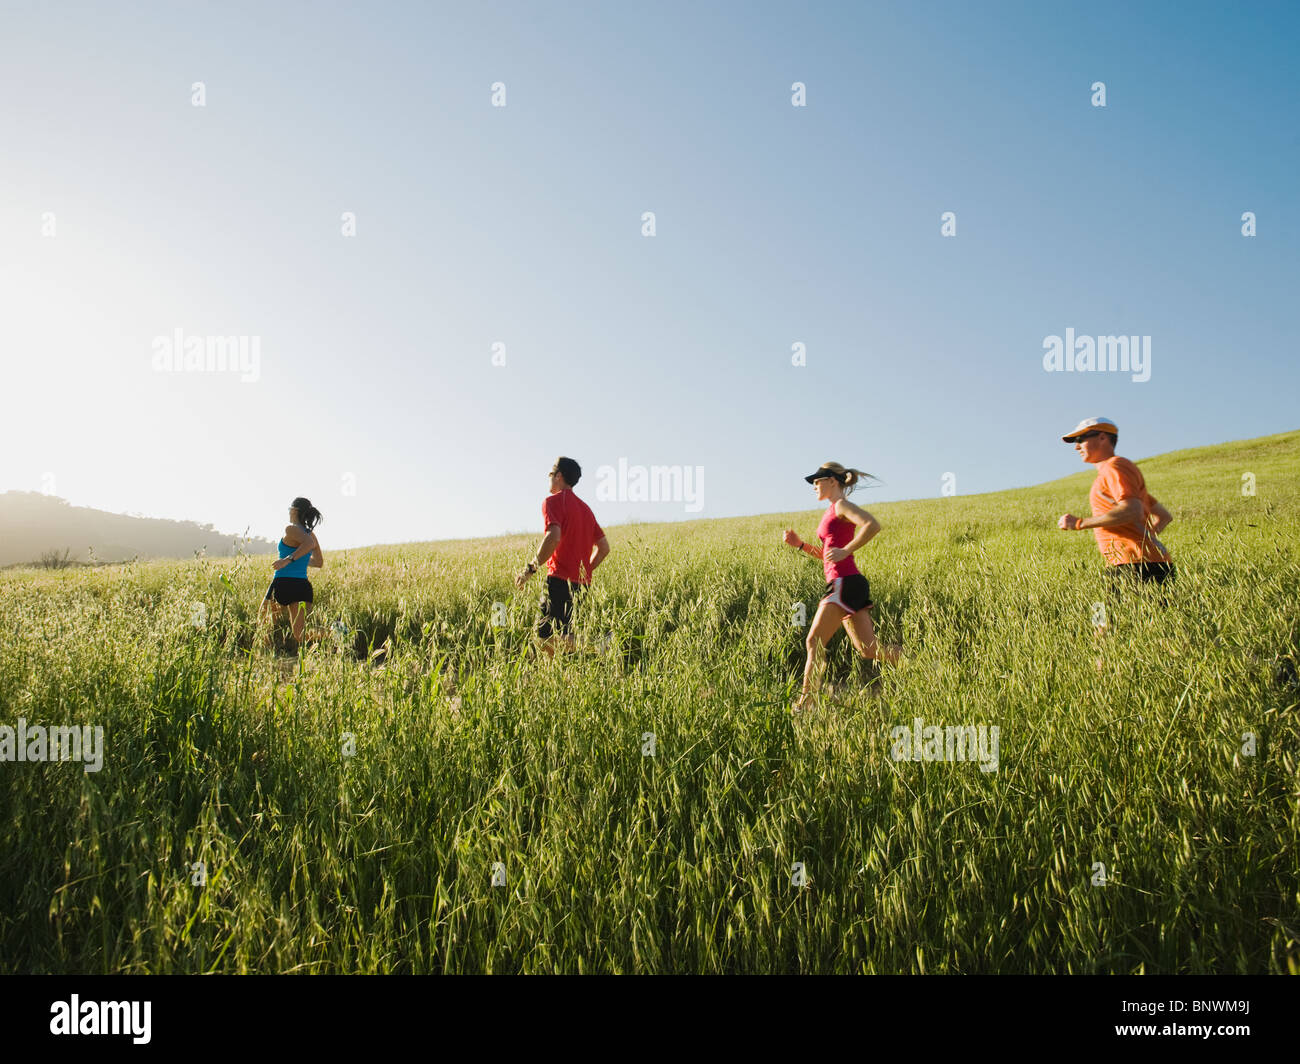 Trail running - Stock Image